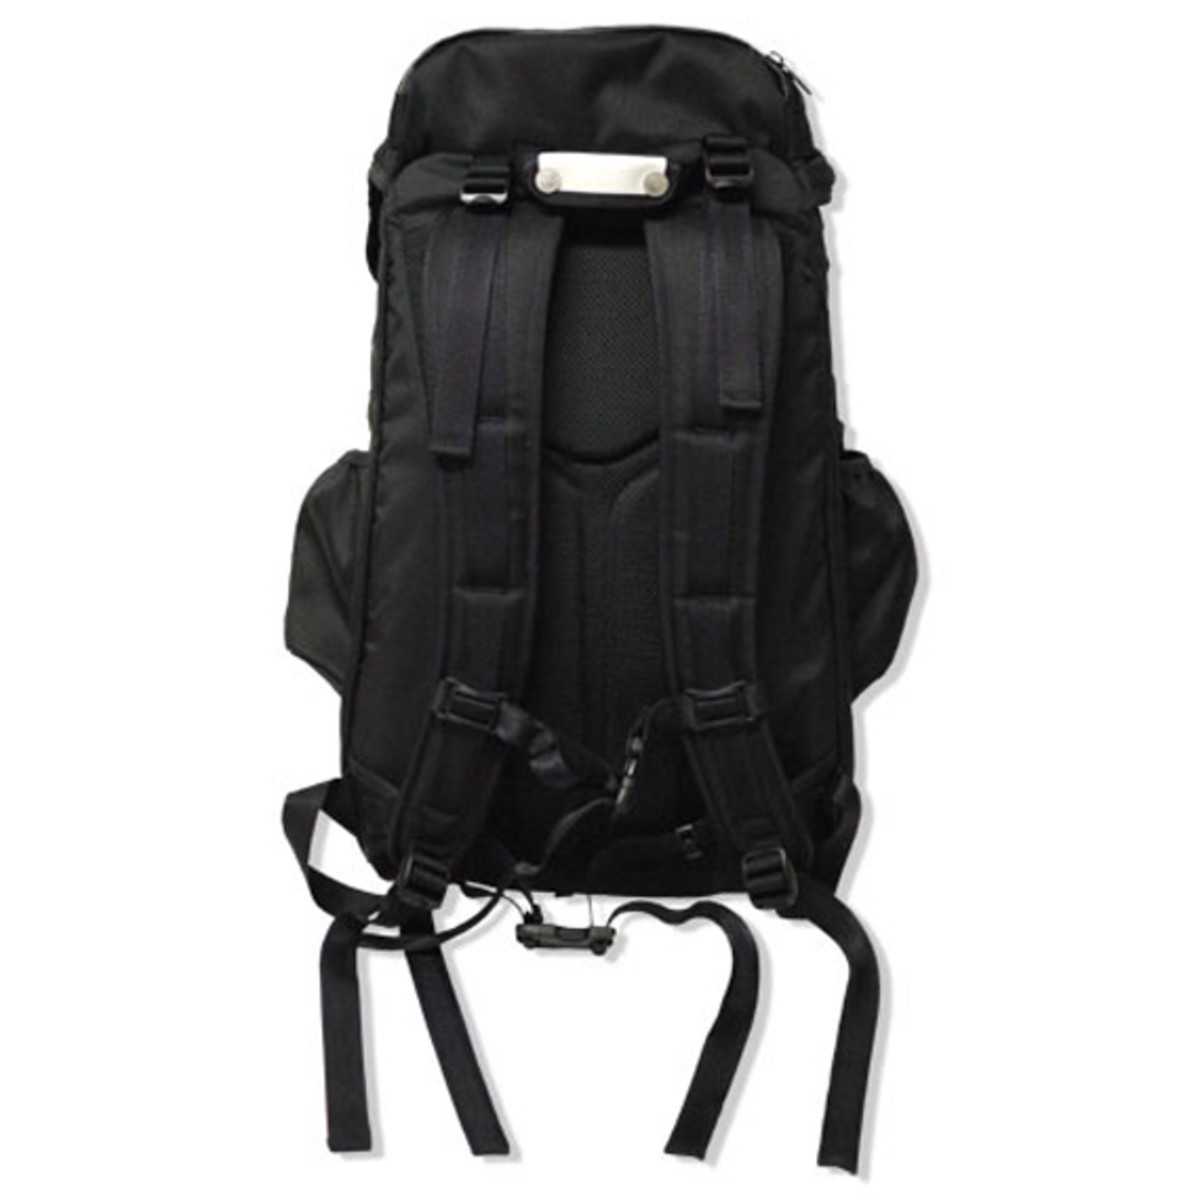 a.four-immun-recto-backpack-02